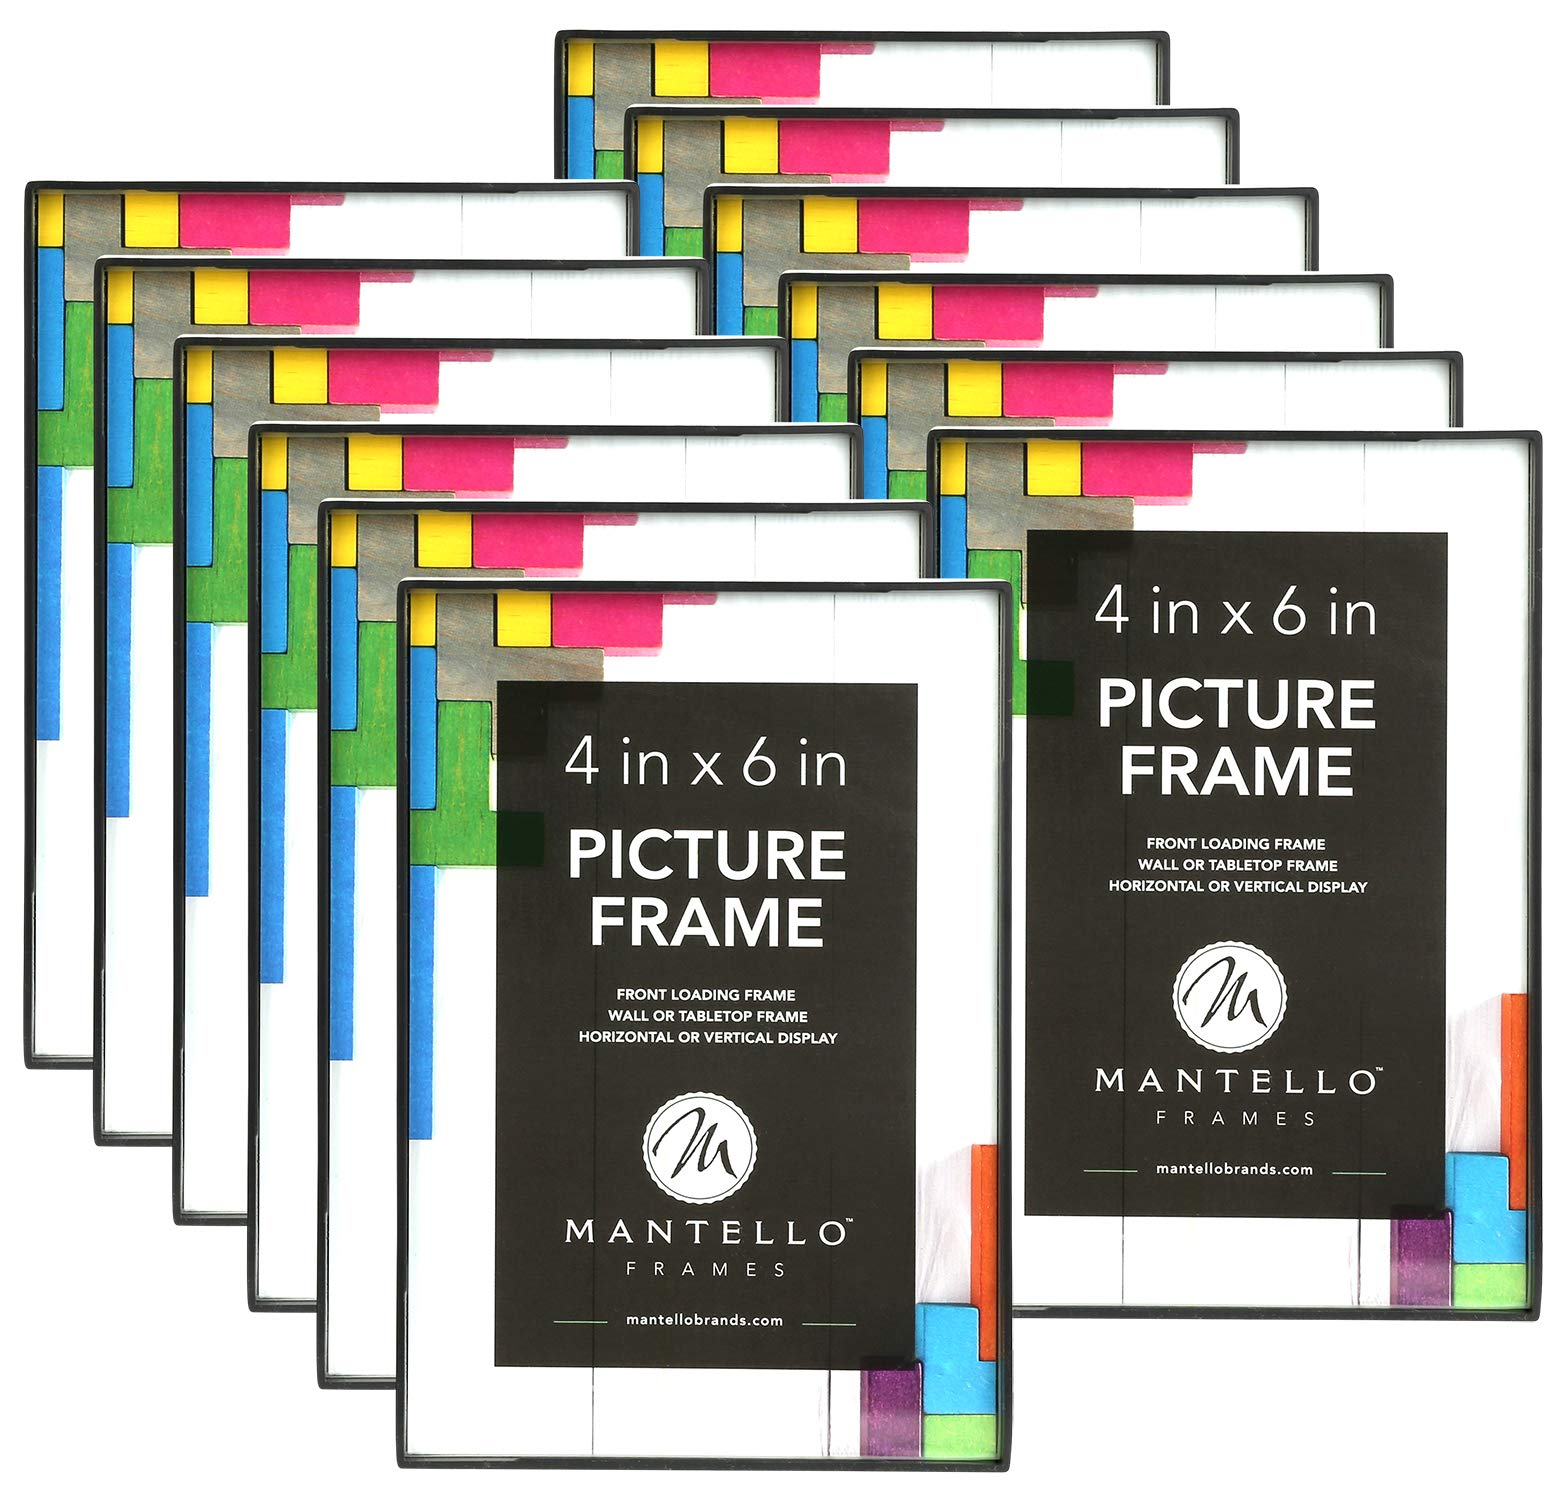 Mantello 4x6 Inch Picture Frame,12-Pack, Black, Front Loading Design by Mantello